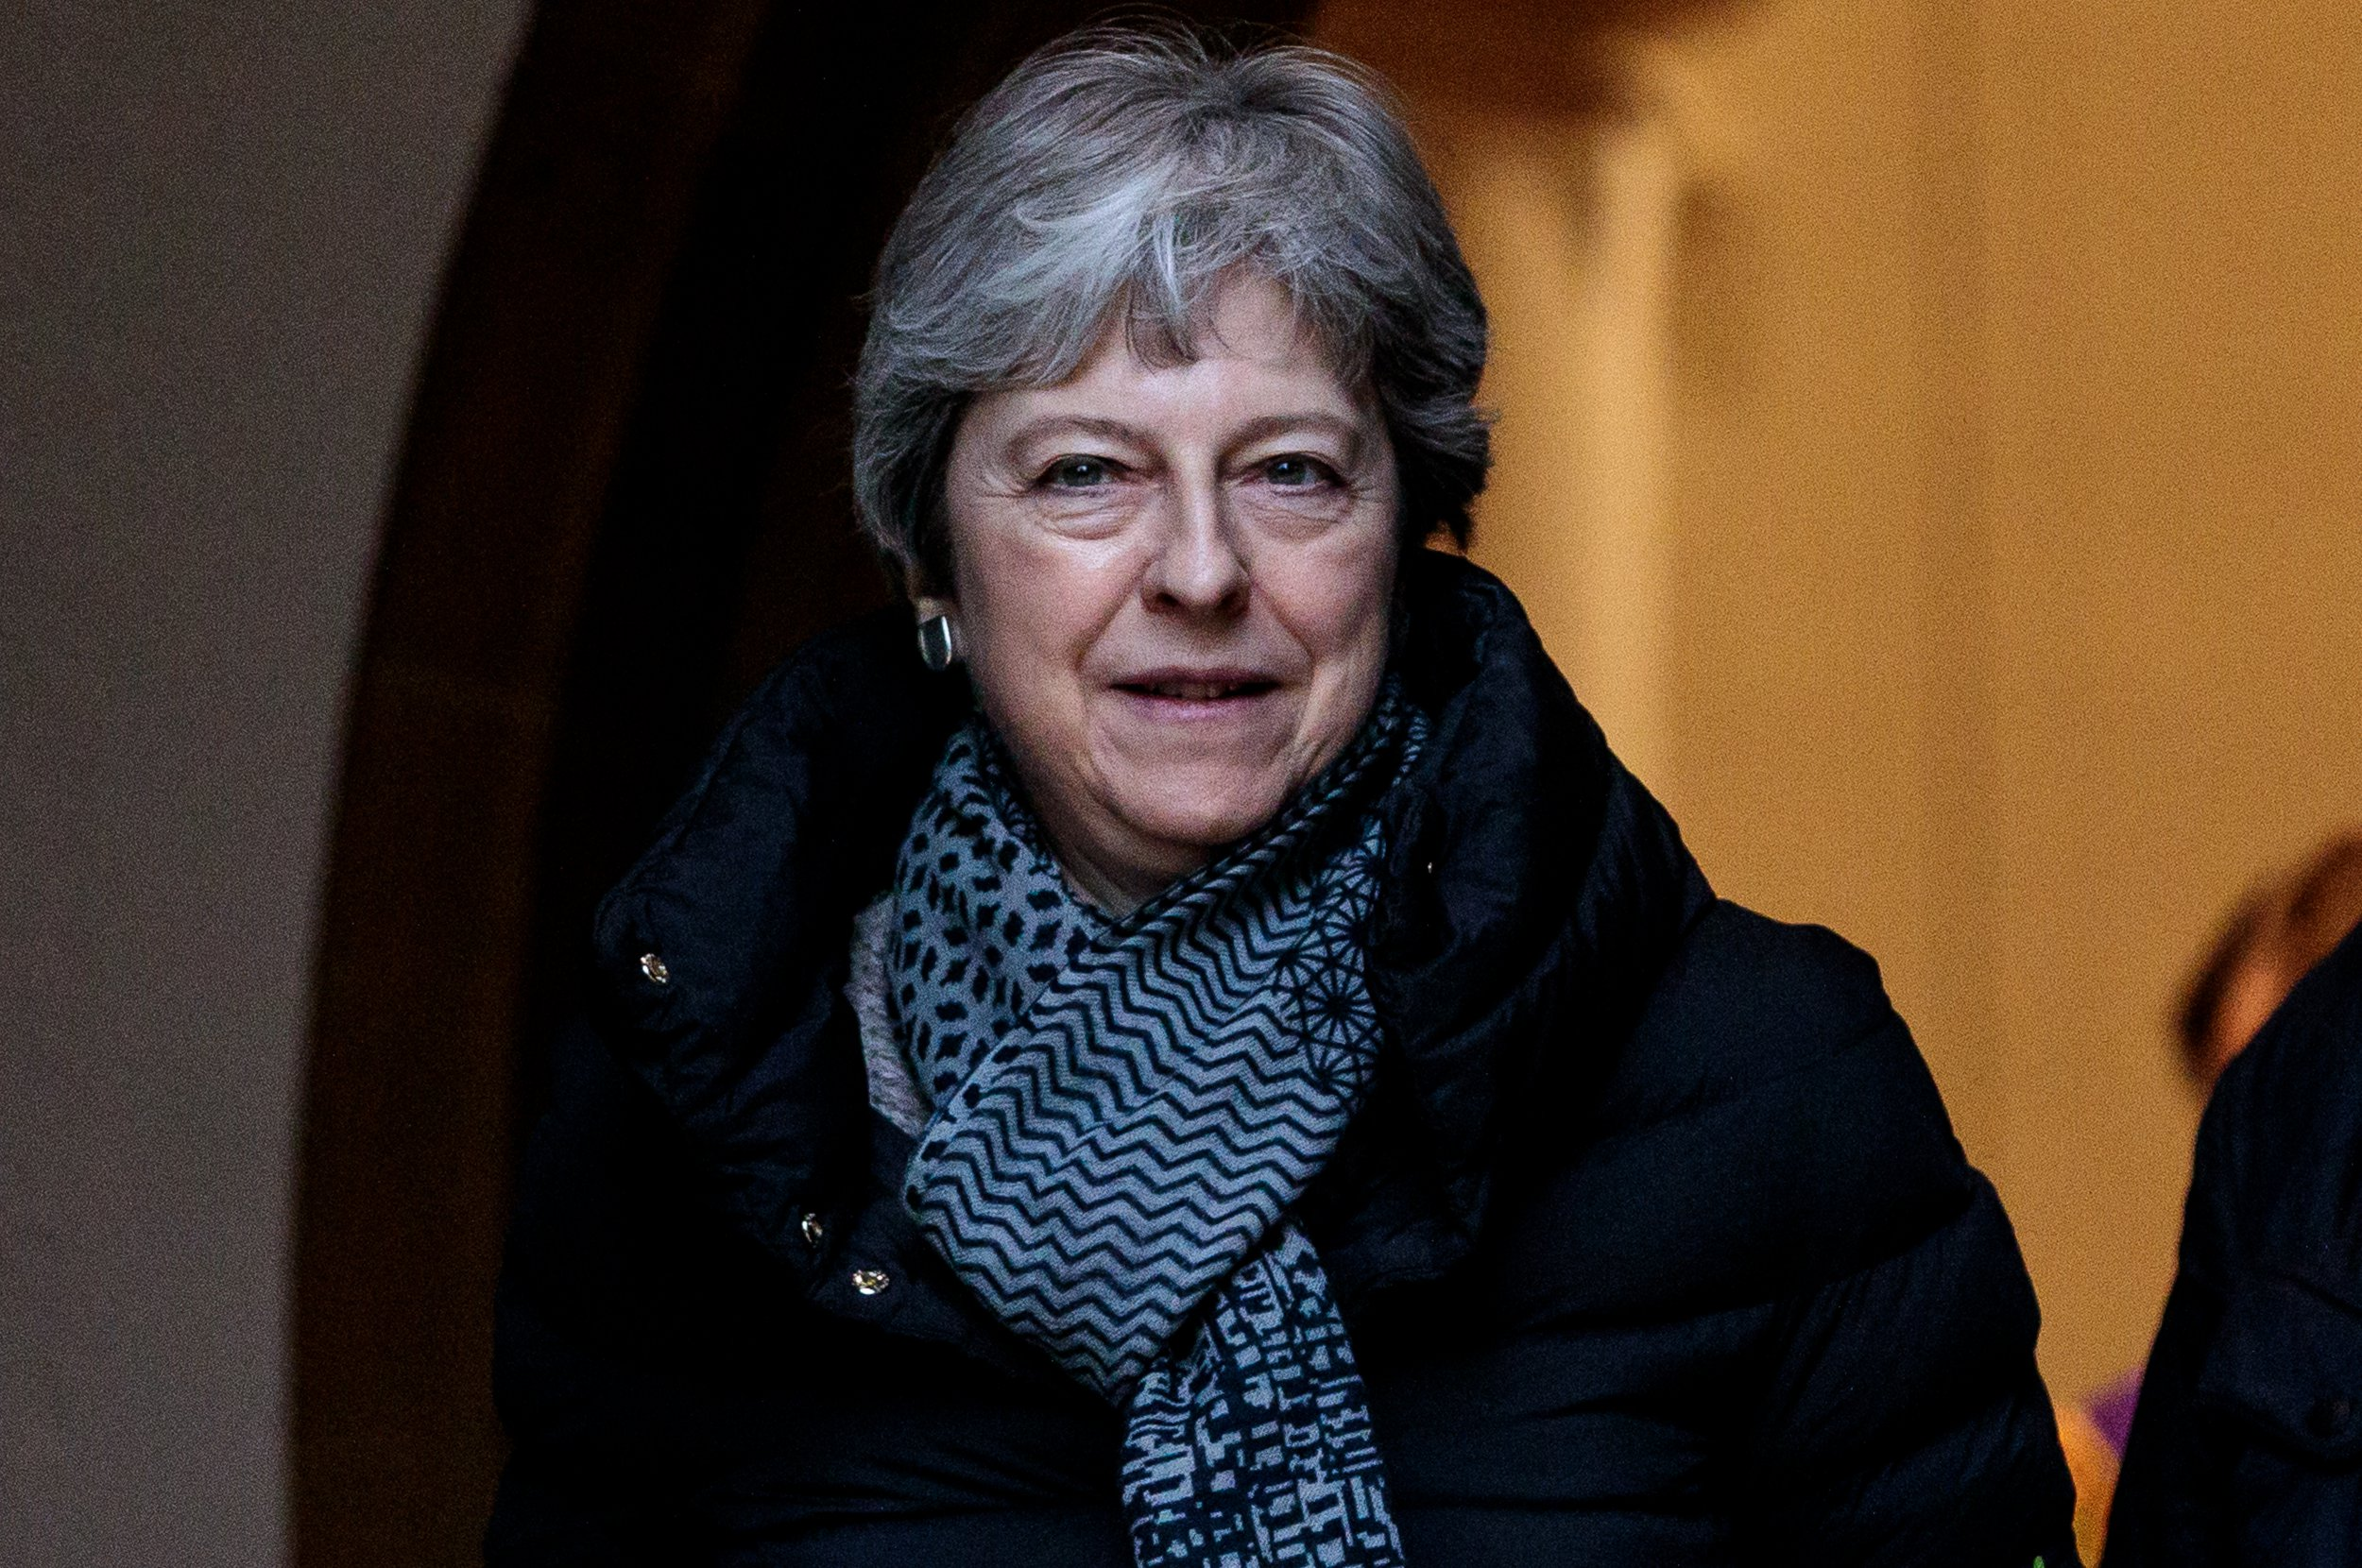 Latest Brexit no deal odds as Theresa May seeks extension